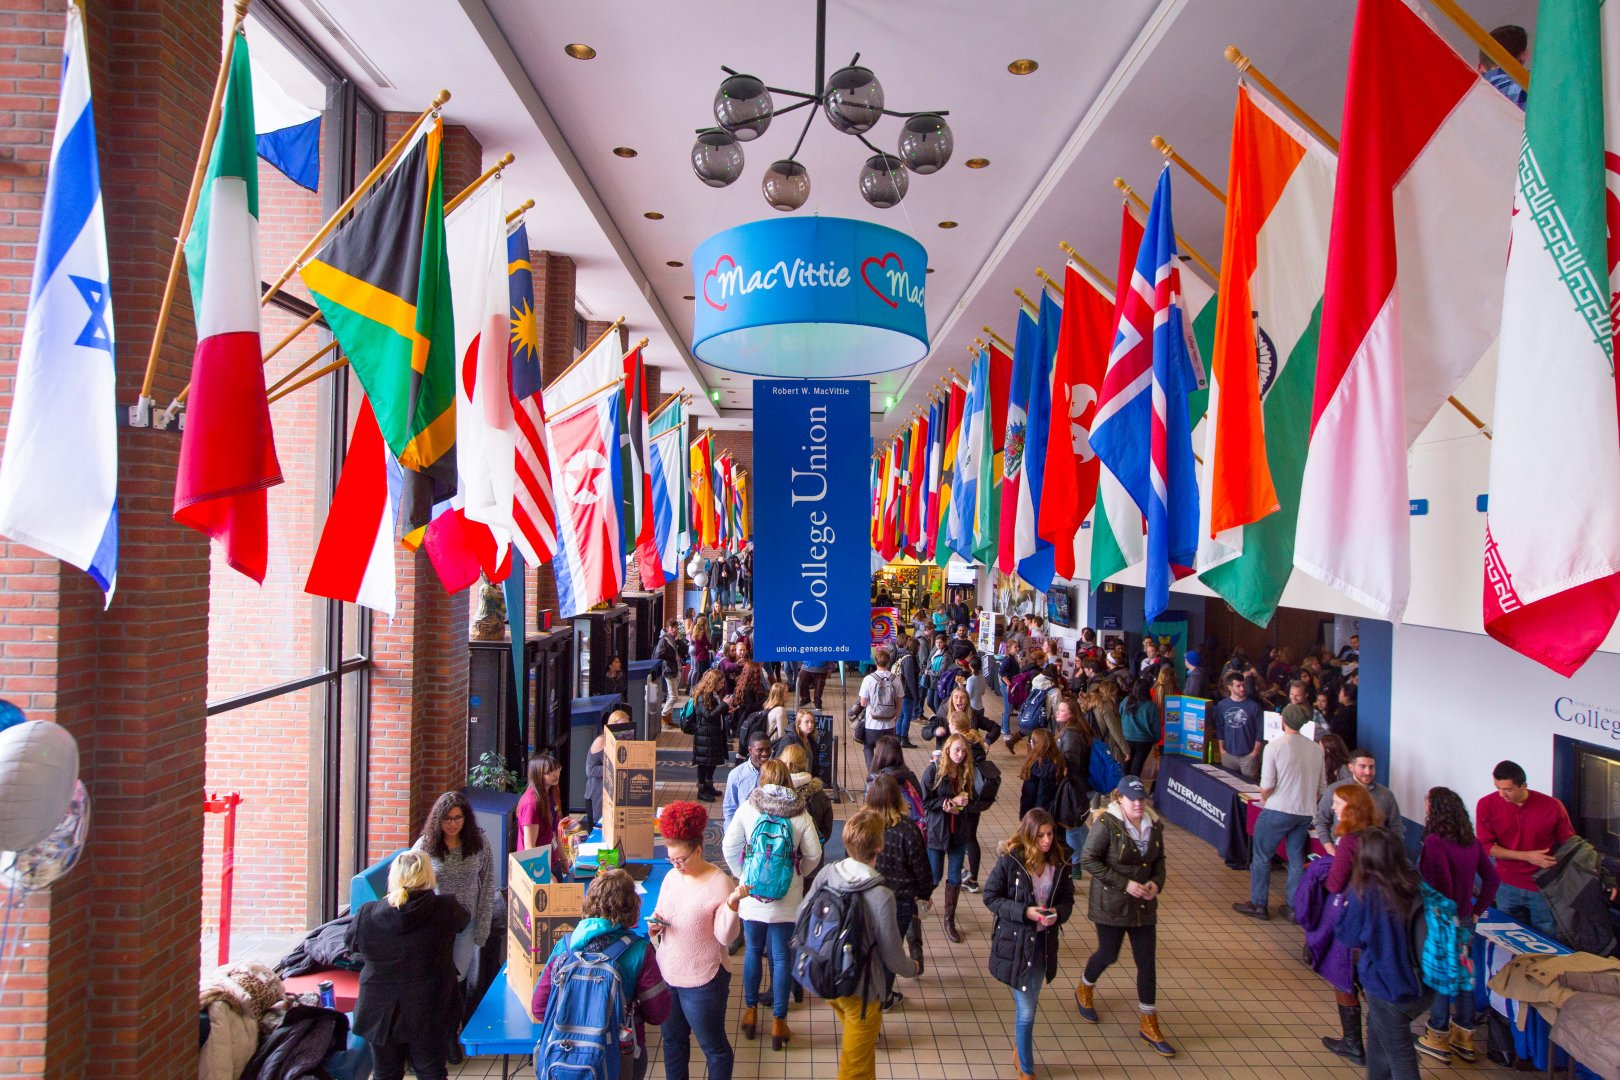 Students standing under multi cultural flags